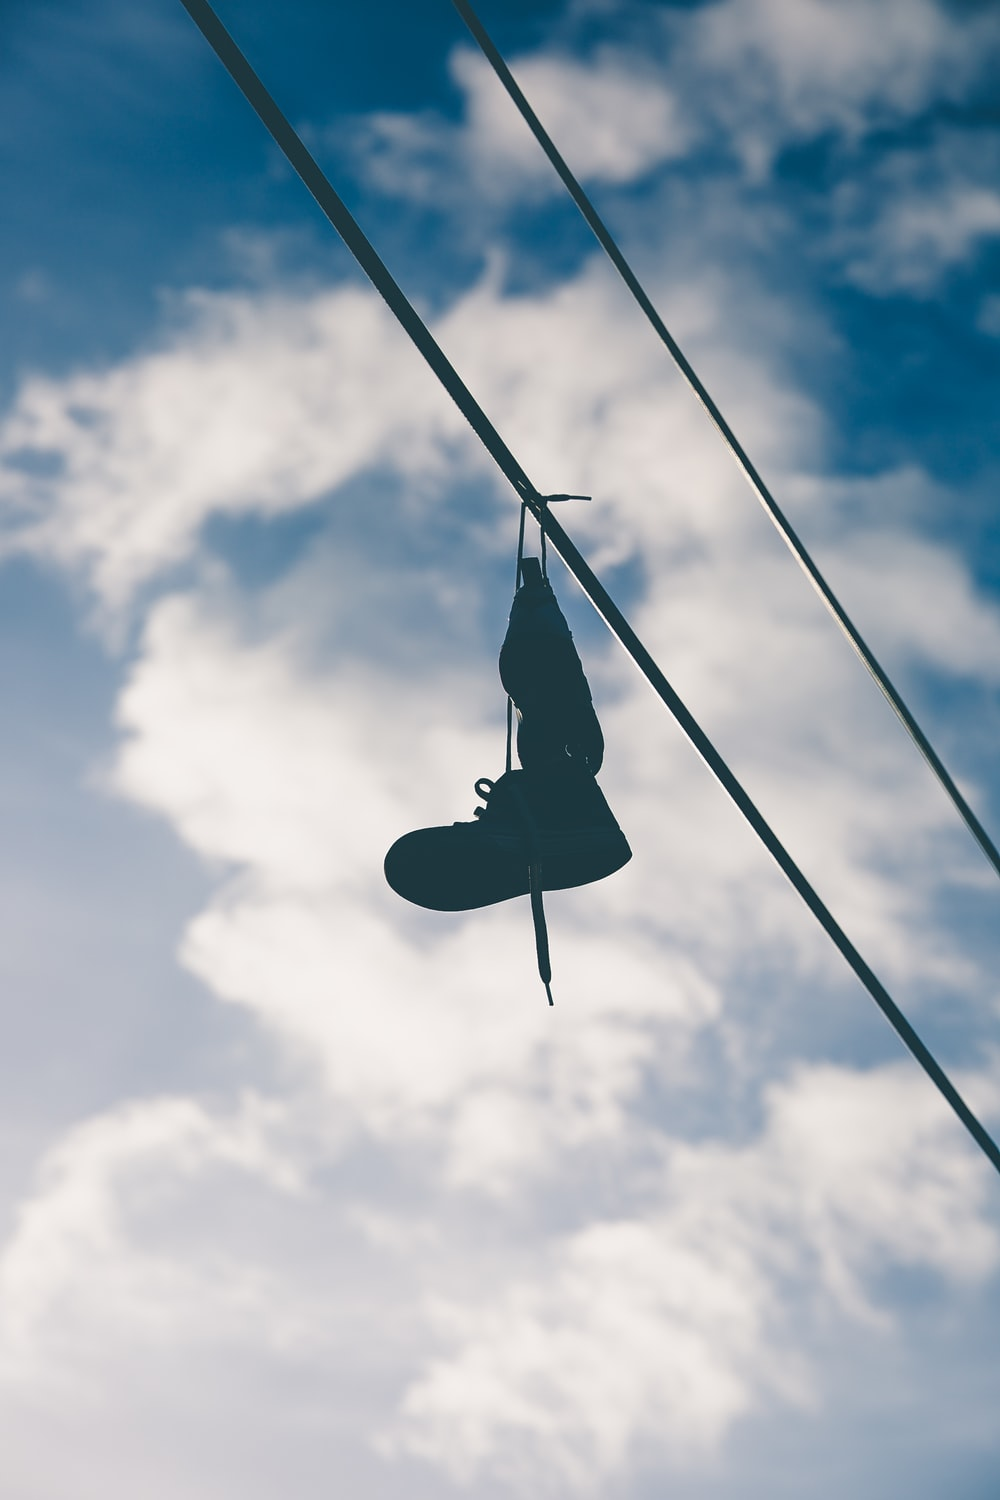 black boot hung on wire